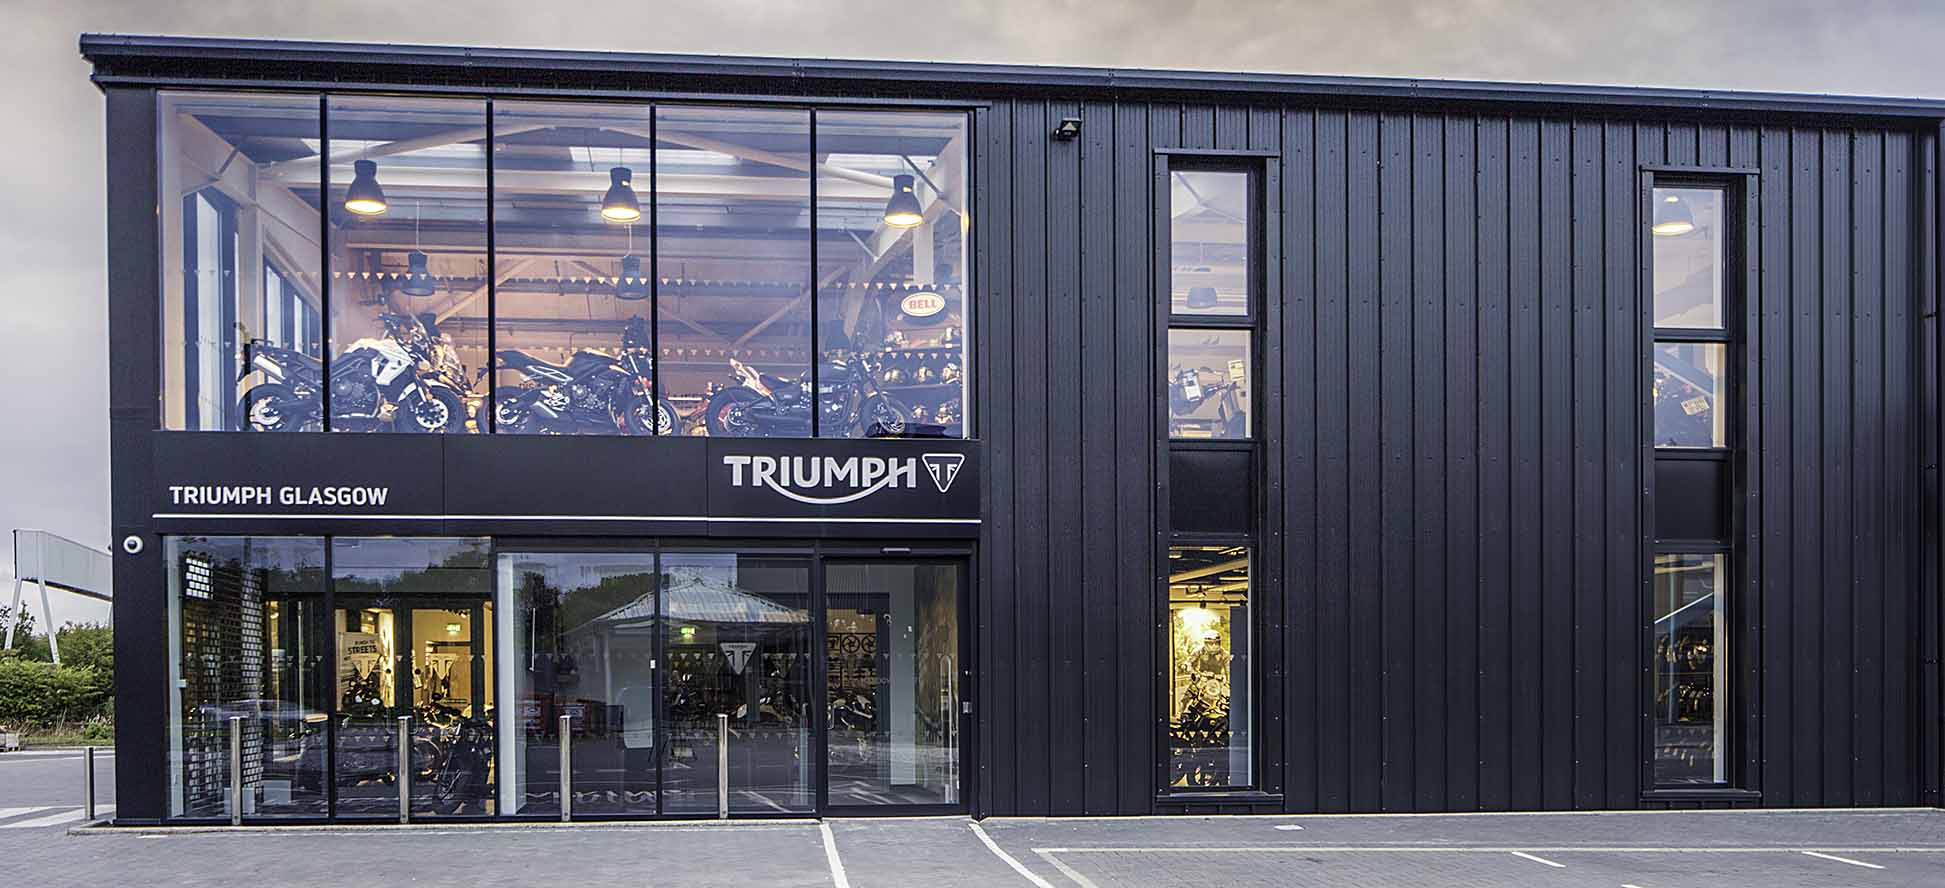 Triumph Dealer Hillington Park, by commercial photographer in Glasgow James Thompson